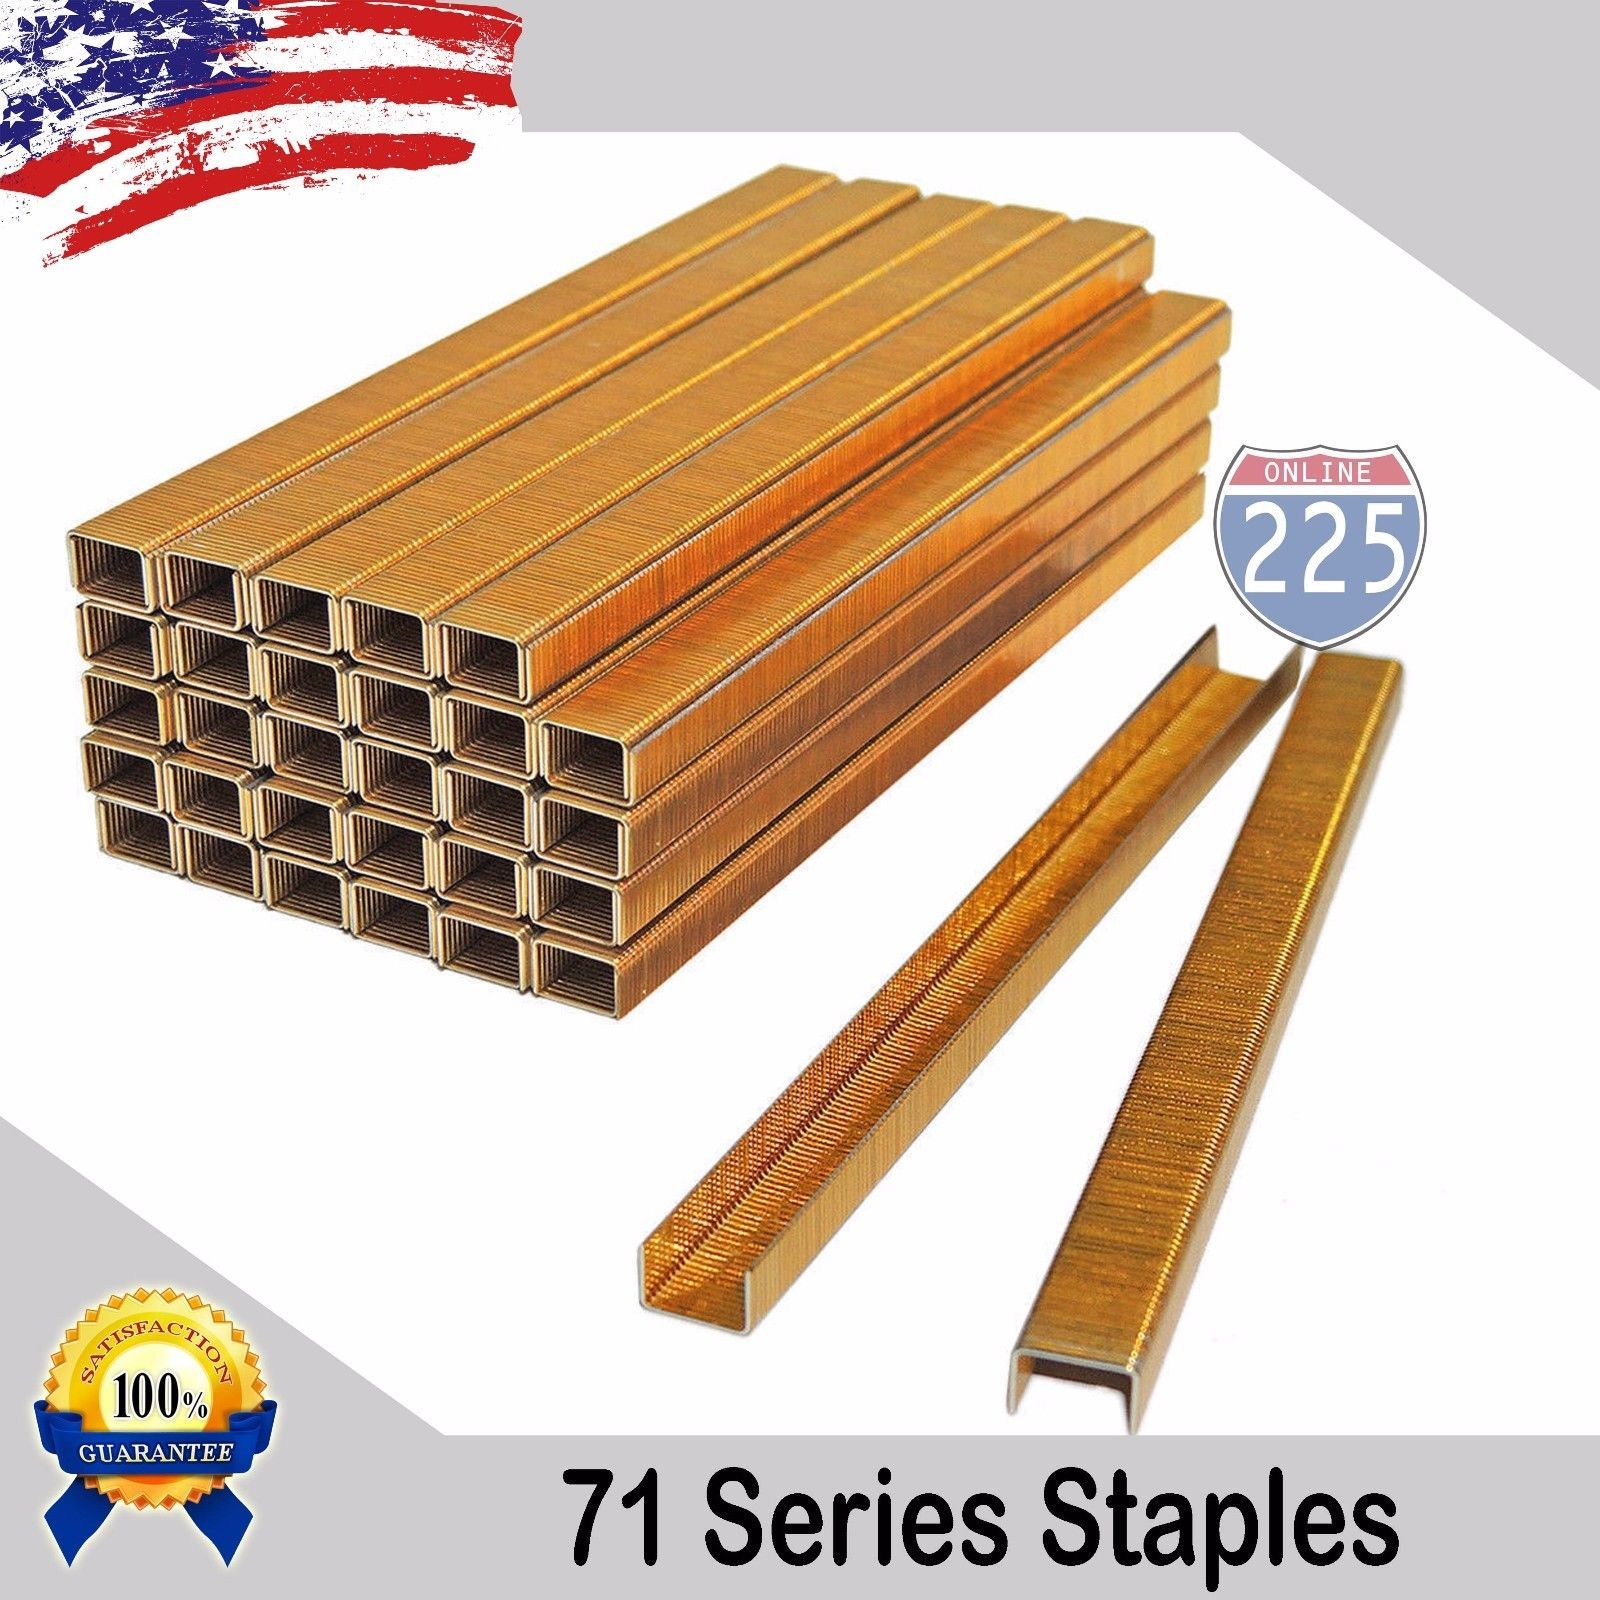 Galvanized Upholstery Staples 71 Series 22 Gauge 3 8 Crown 1 8 5 8 Length Free Expedited Shipping Galvanized Staples Industrial Staples